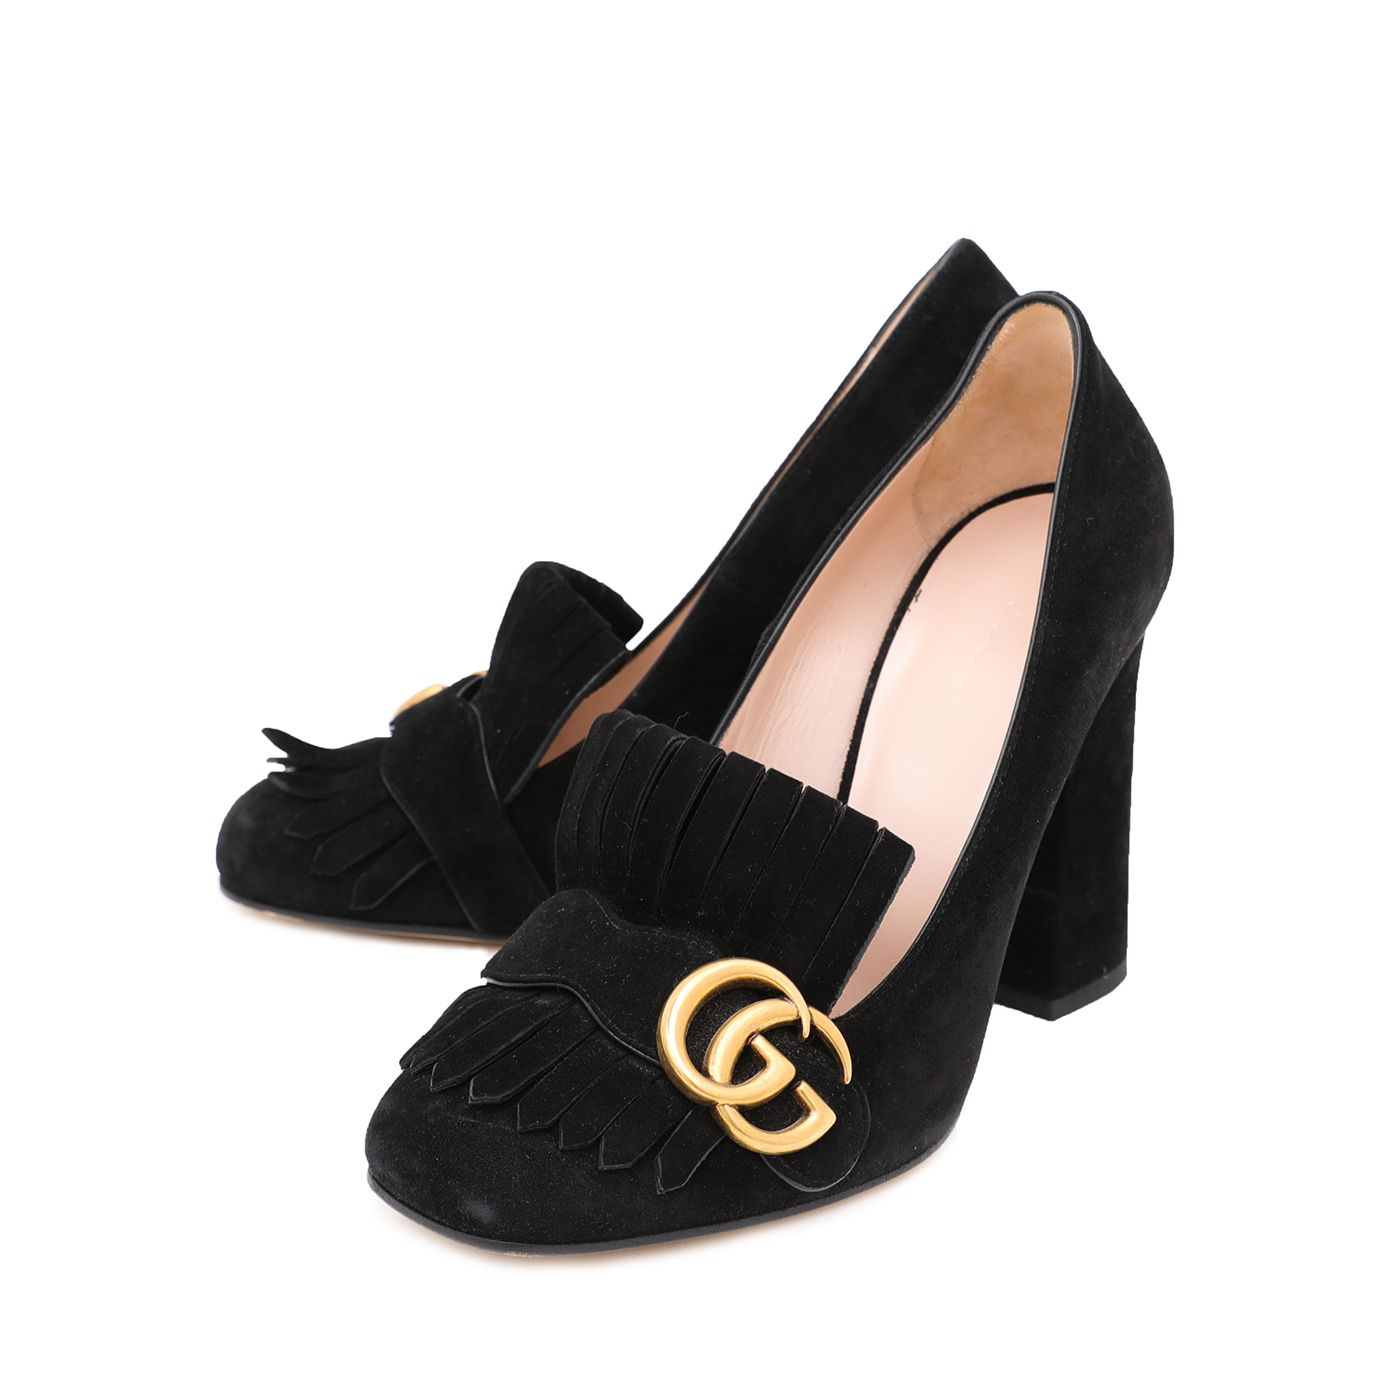 Gucci Black Suede GG Marmont Fringe Loafers Pumps 37.5